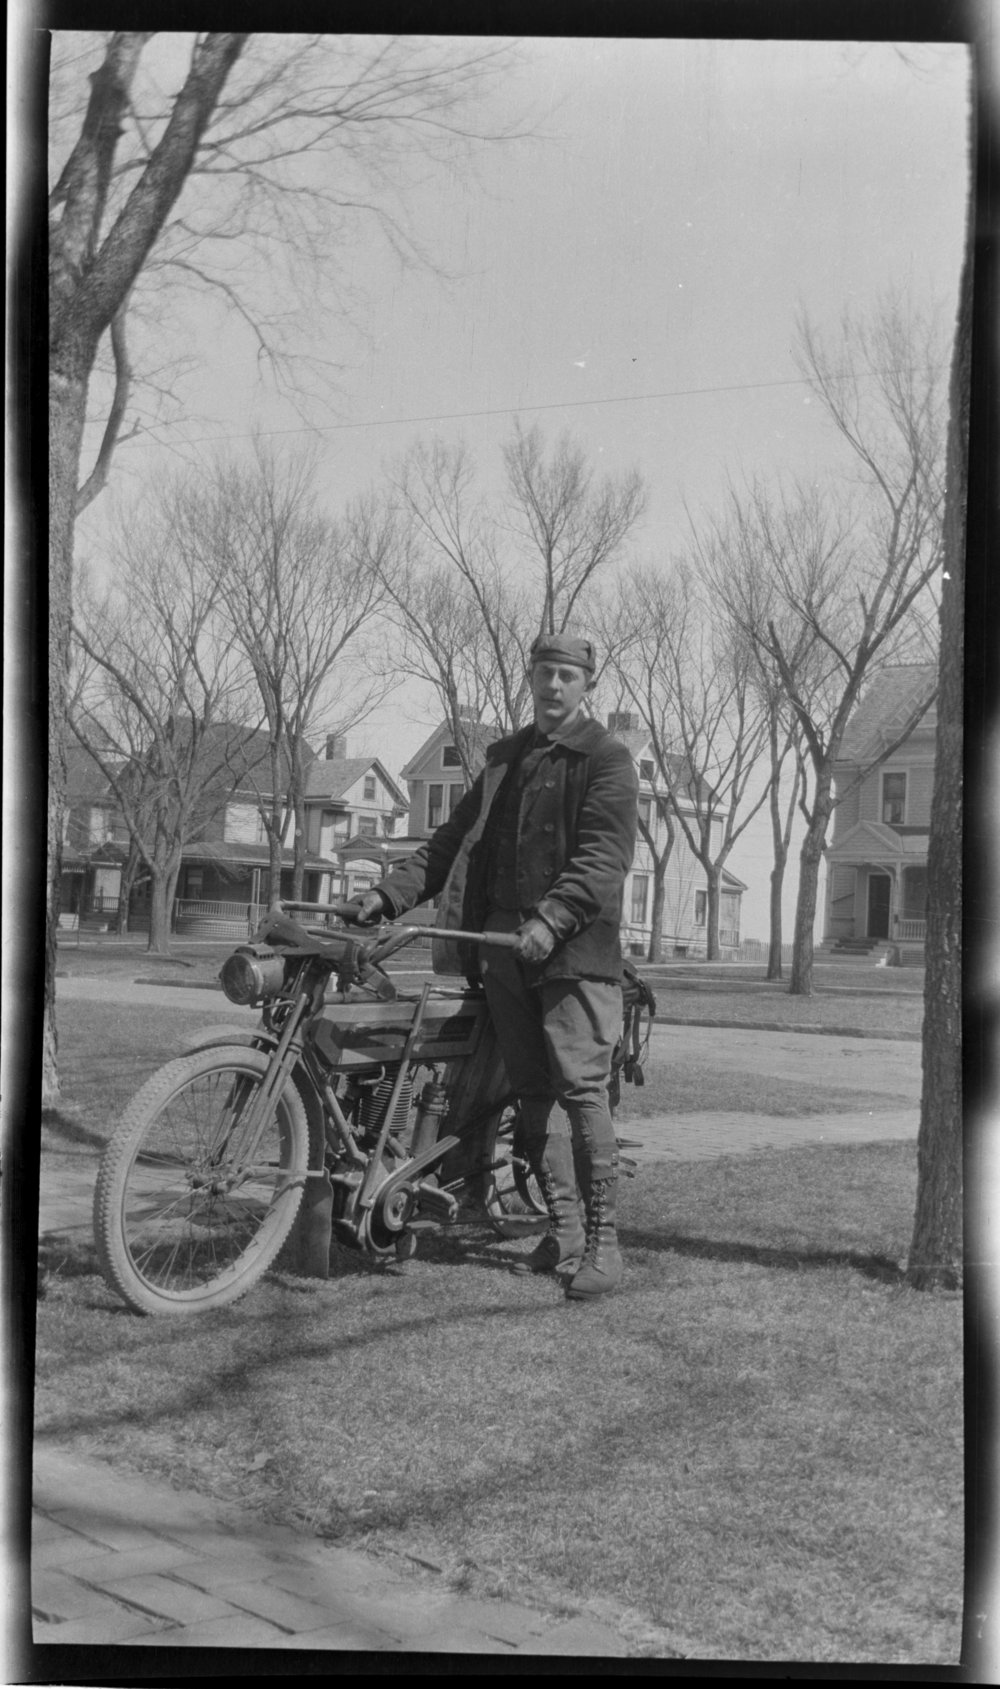 Man with Early Motorcycle, colonel test 008, JPG